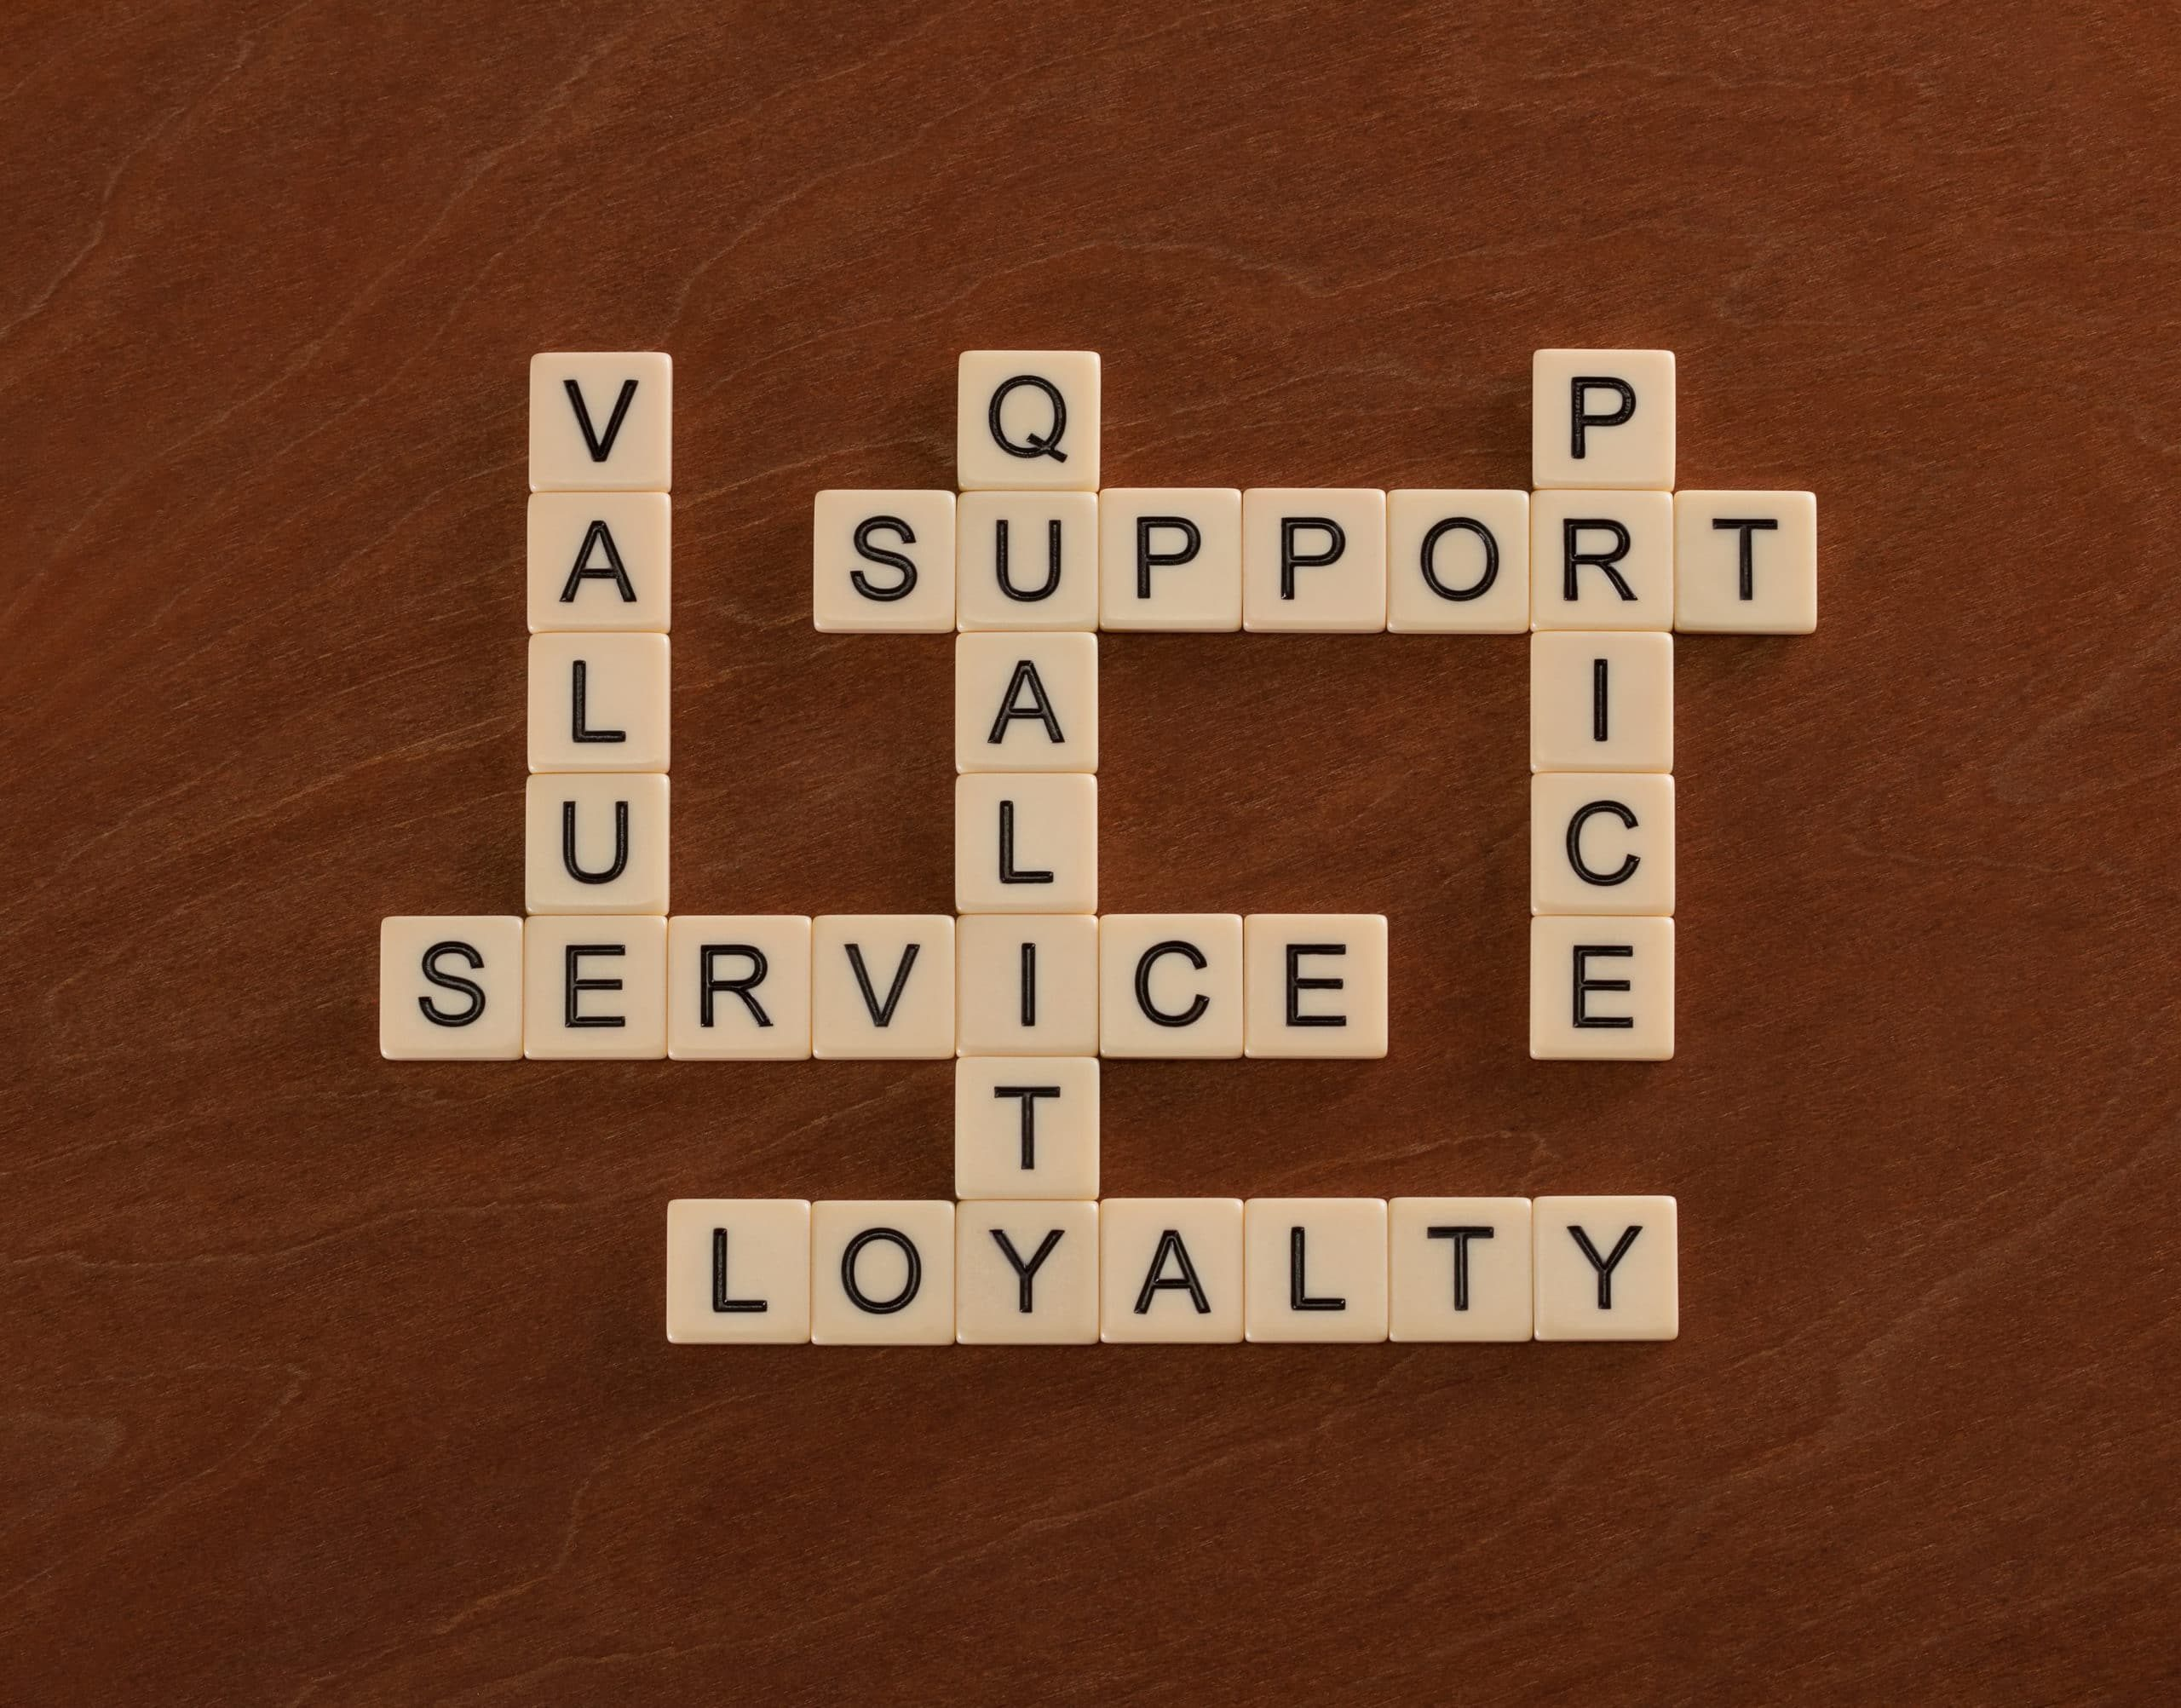 alphabet bricks spelling Value, Service, quality, support, price and loyalty